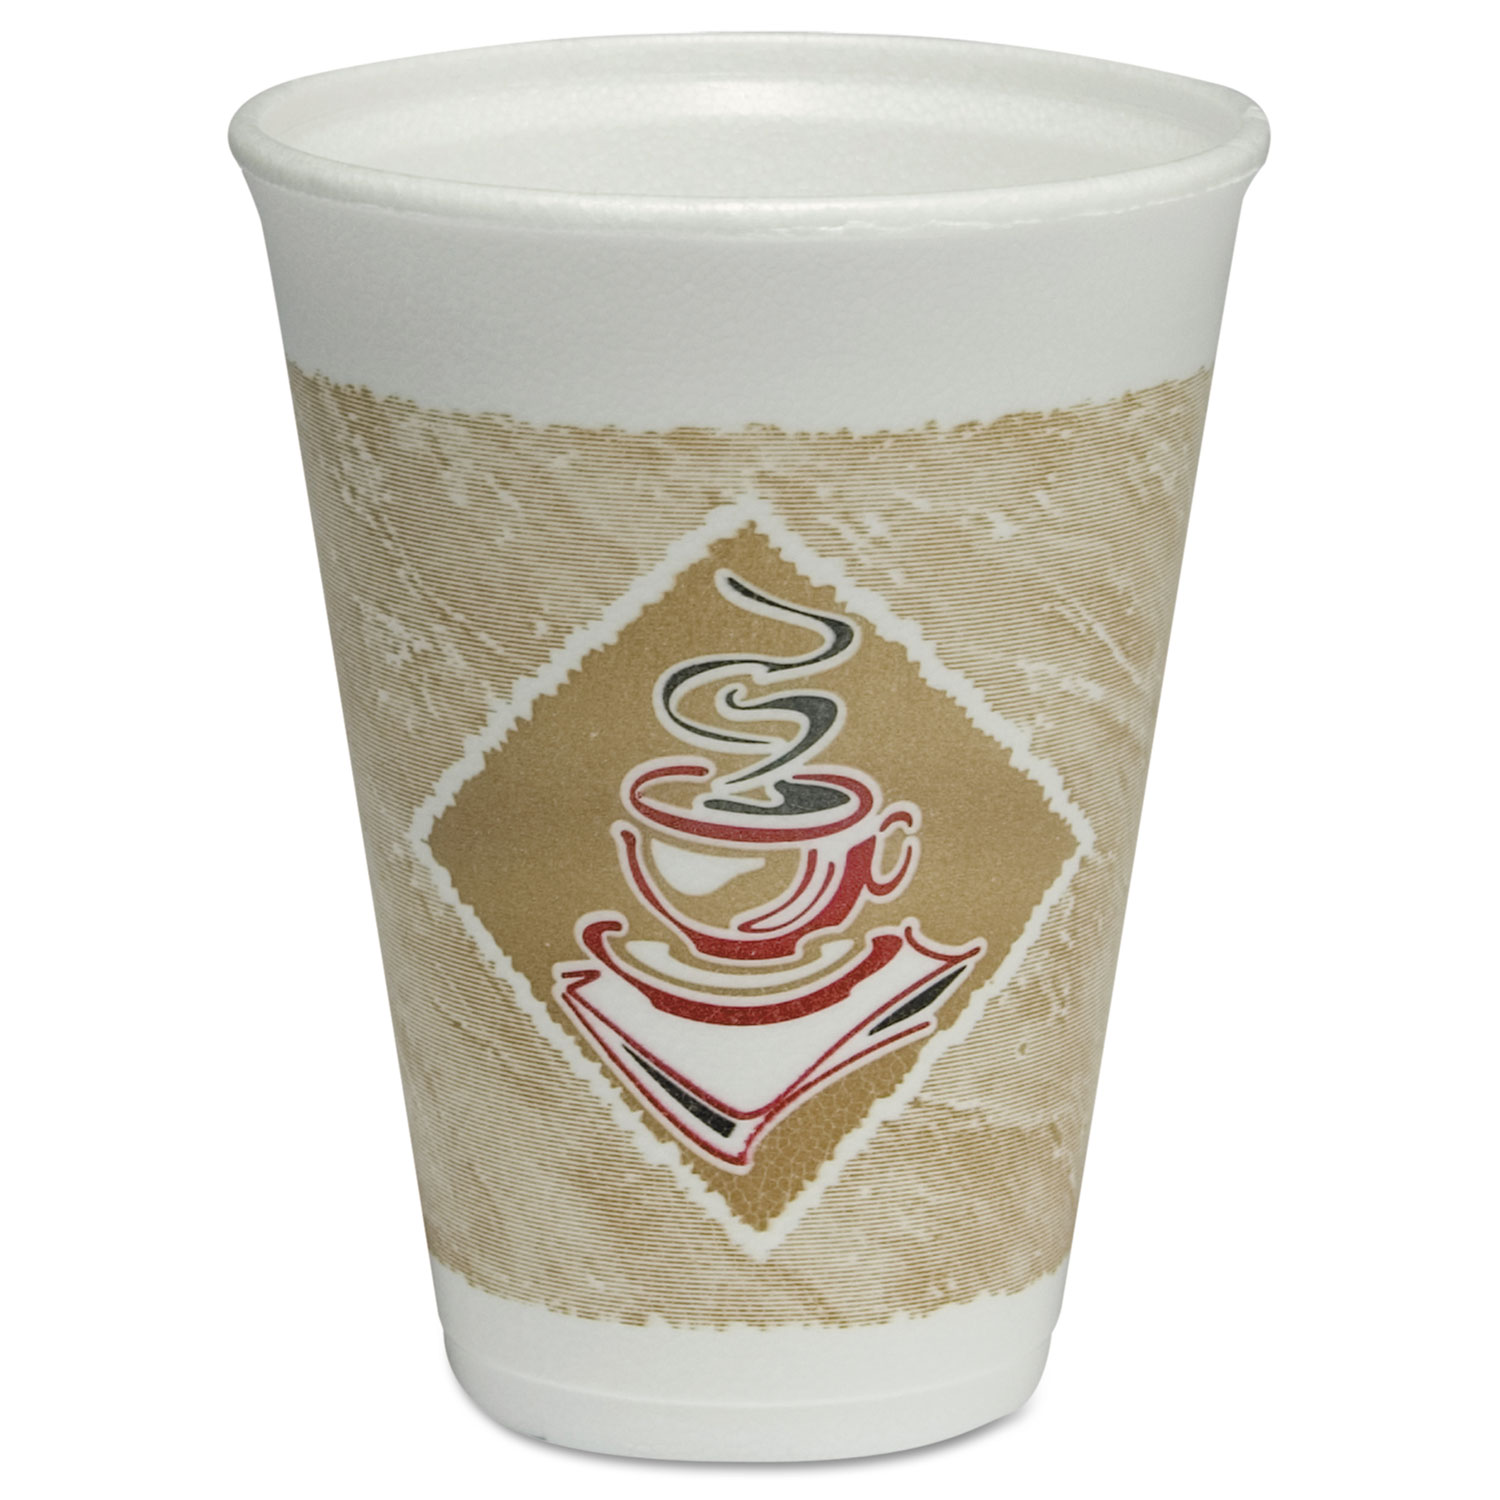 Café G Hot/Cold Cups, Foam, 12oz, White w/Brown & Red, 20/Bag, 50 Bags/Carton